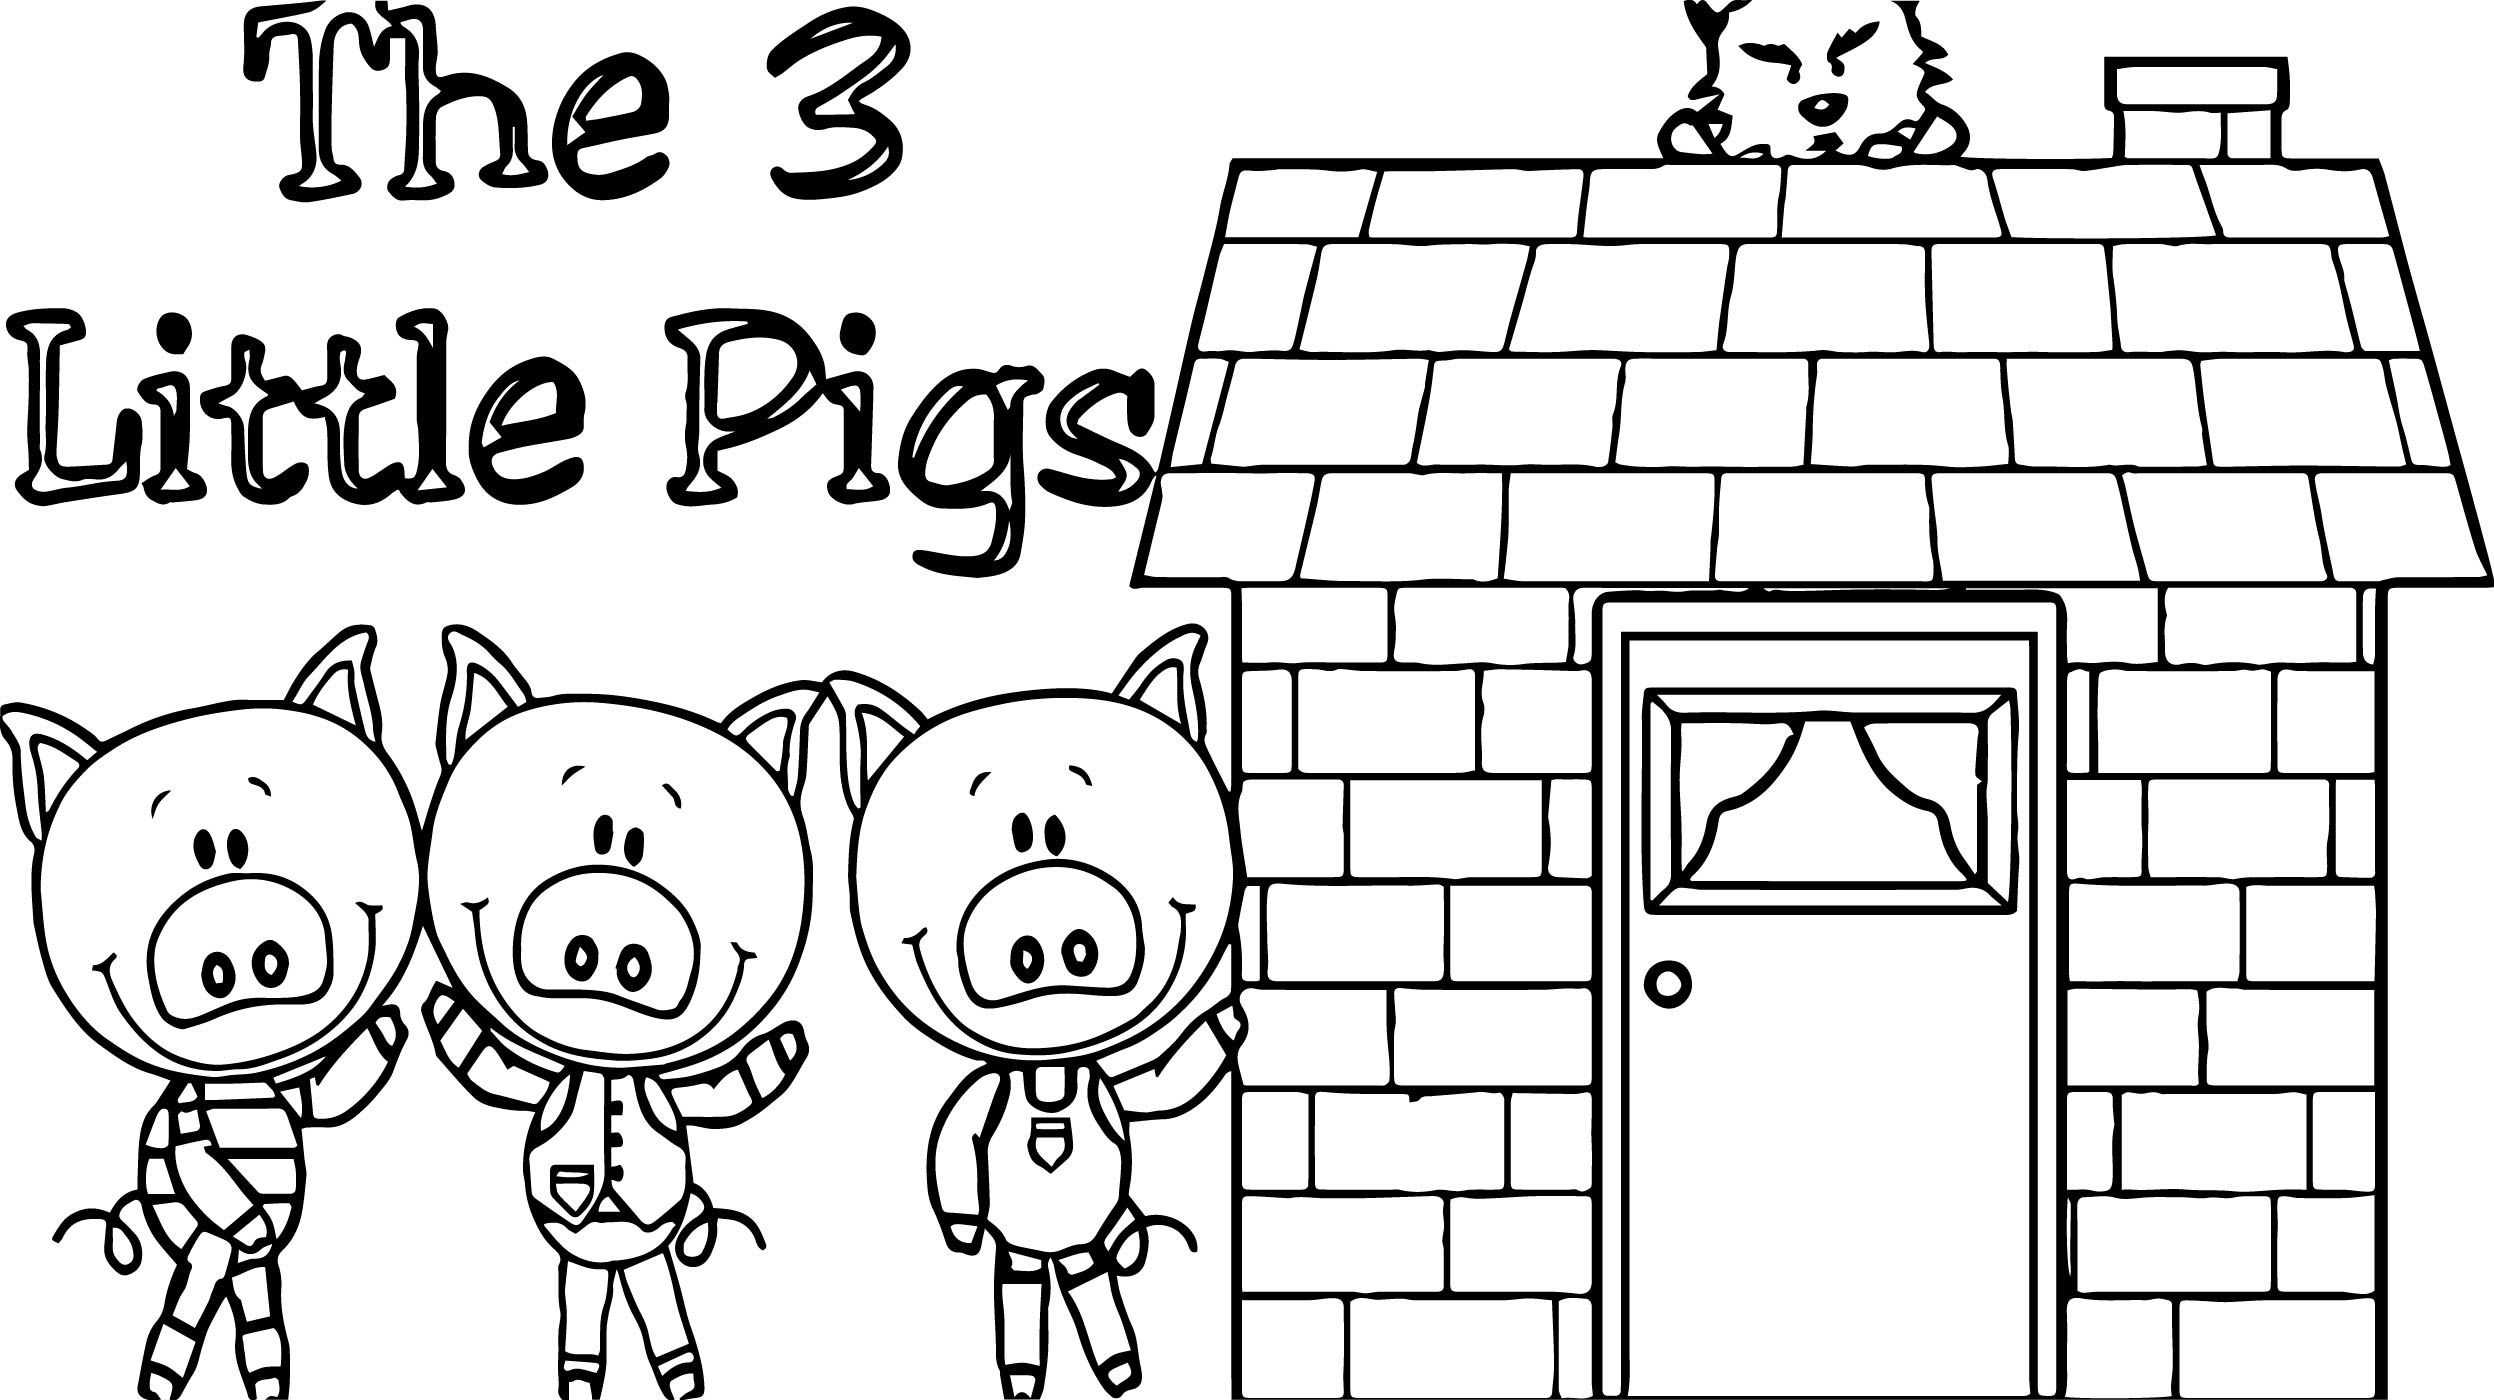 Cool 3 Little Pigs House Coloring Page House Colouring Pages Little Pigs Coloring Pages